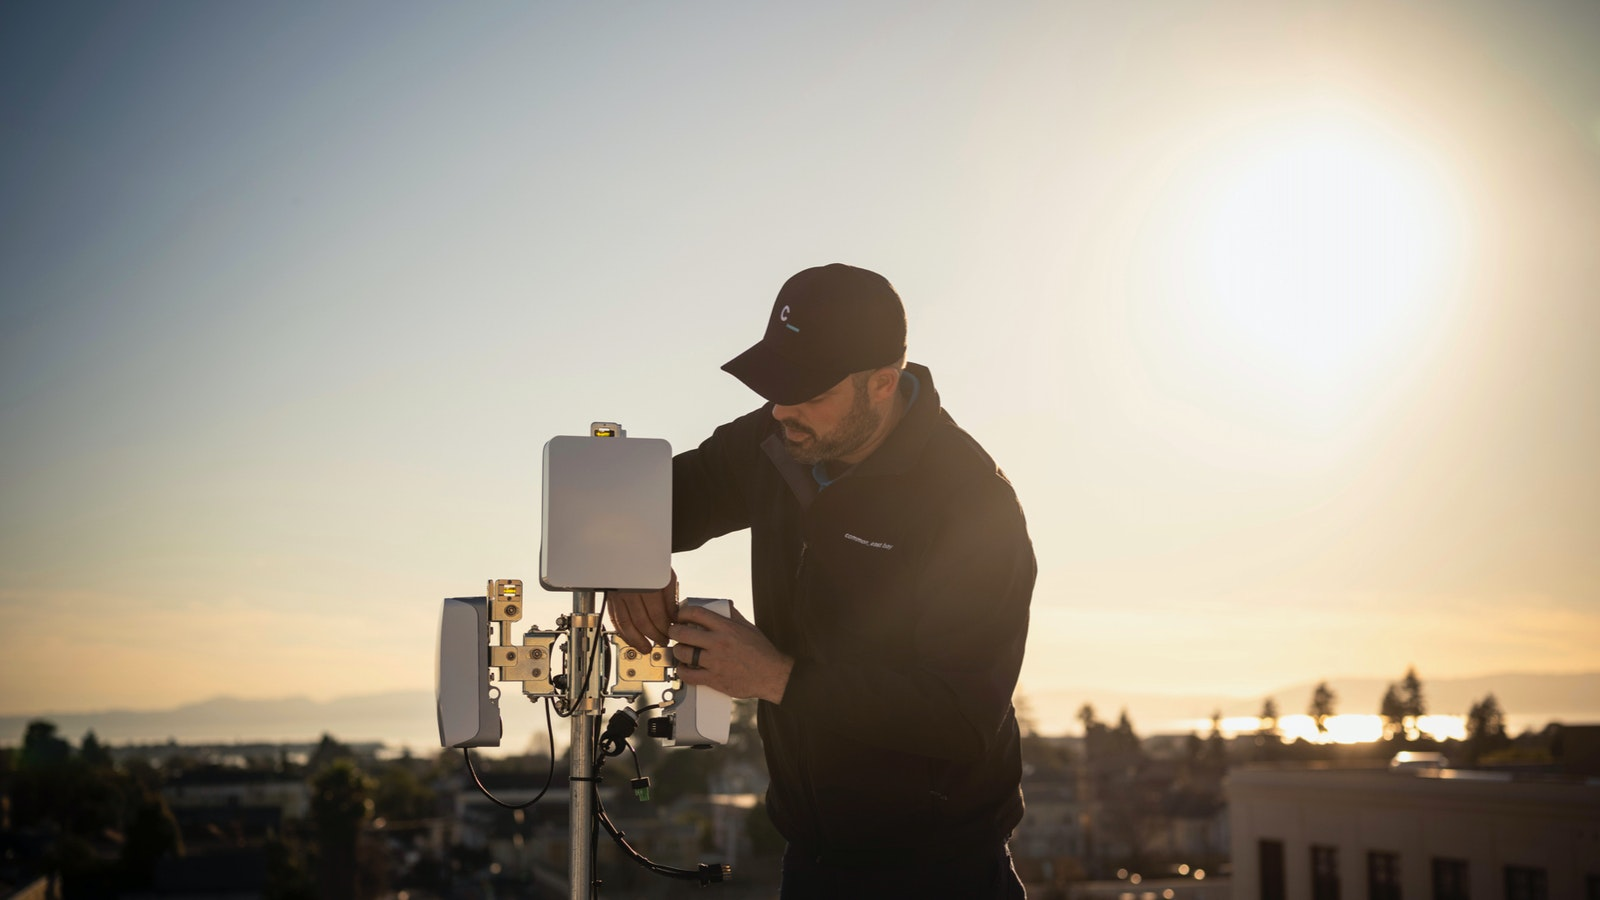 A Common Networks field technician installs a wireless broadband connection. Photo by Common Networks